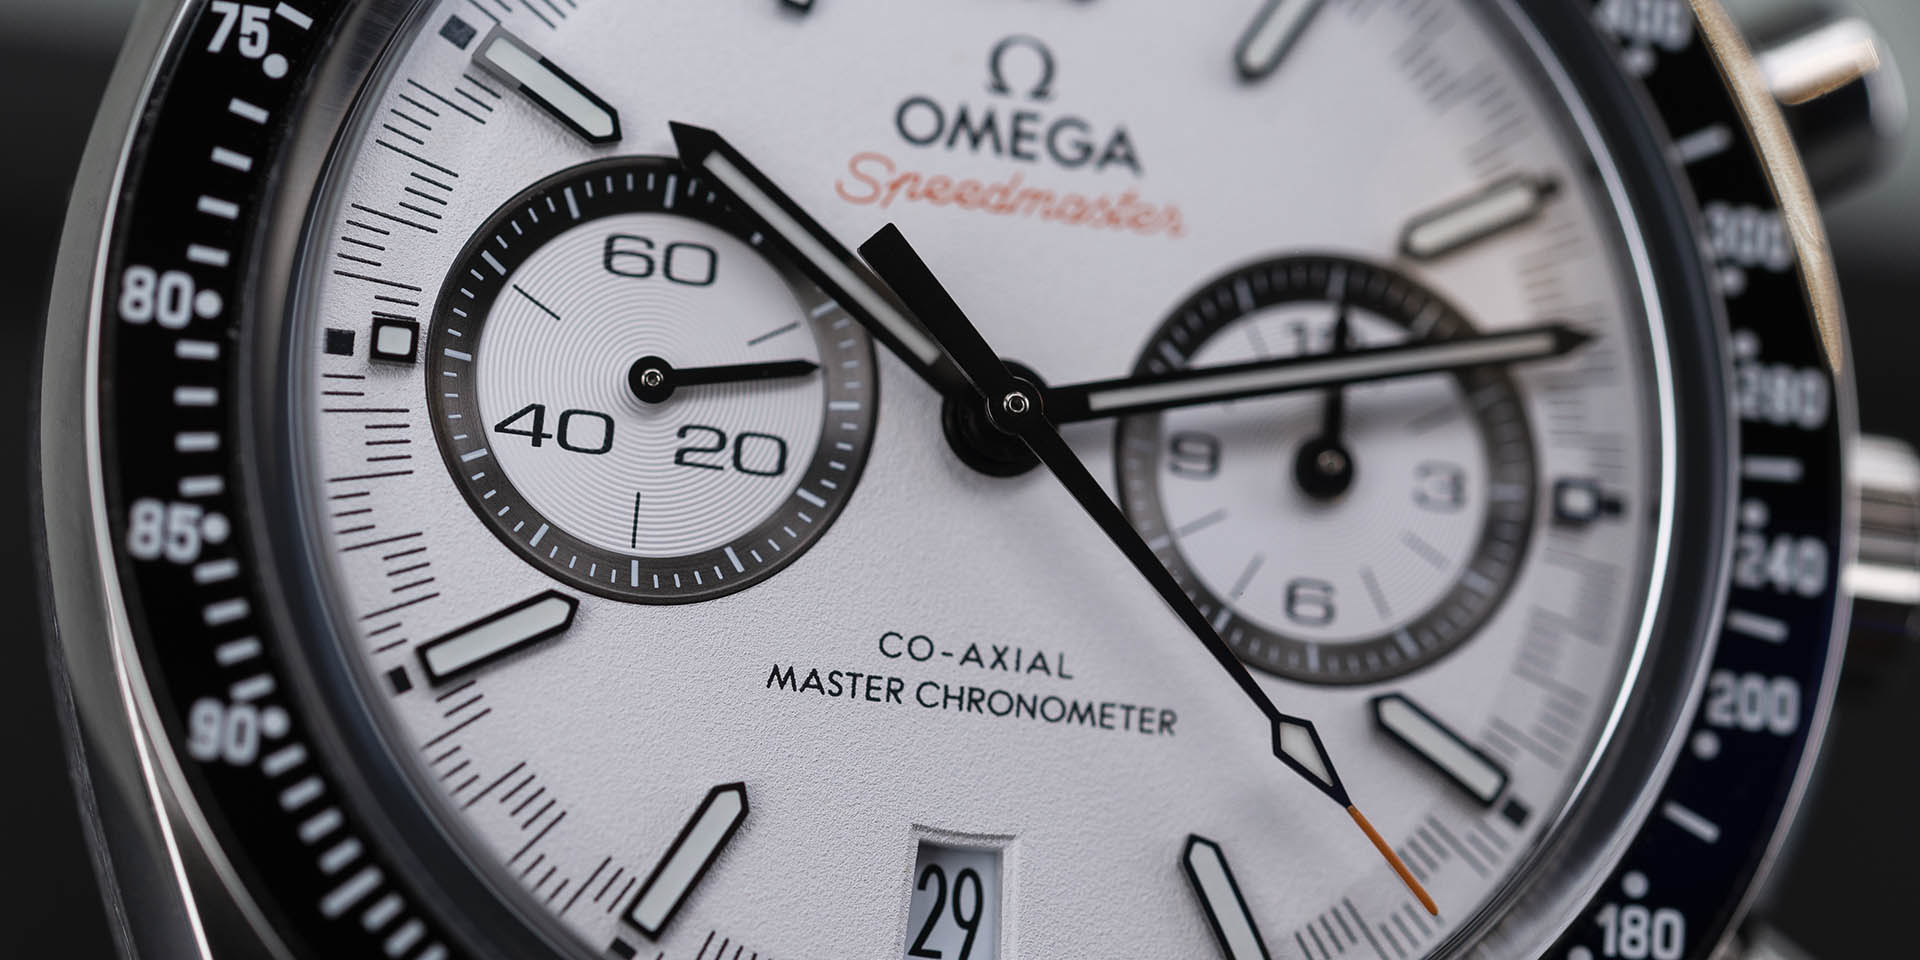 329-30-44-51-04-001-omega-speedmaster-racing-co-axial-master-1.jpg